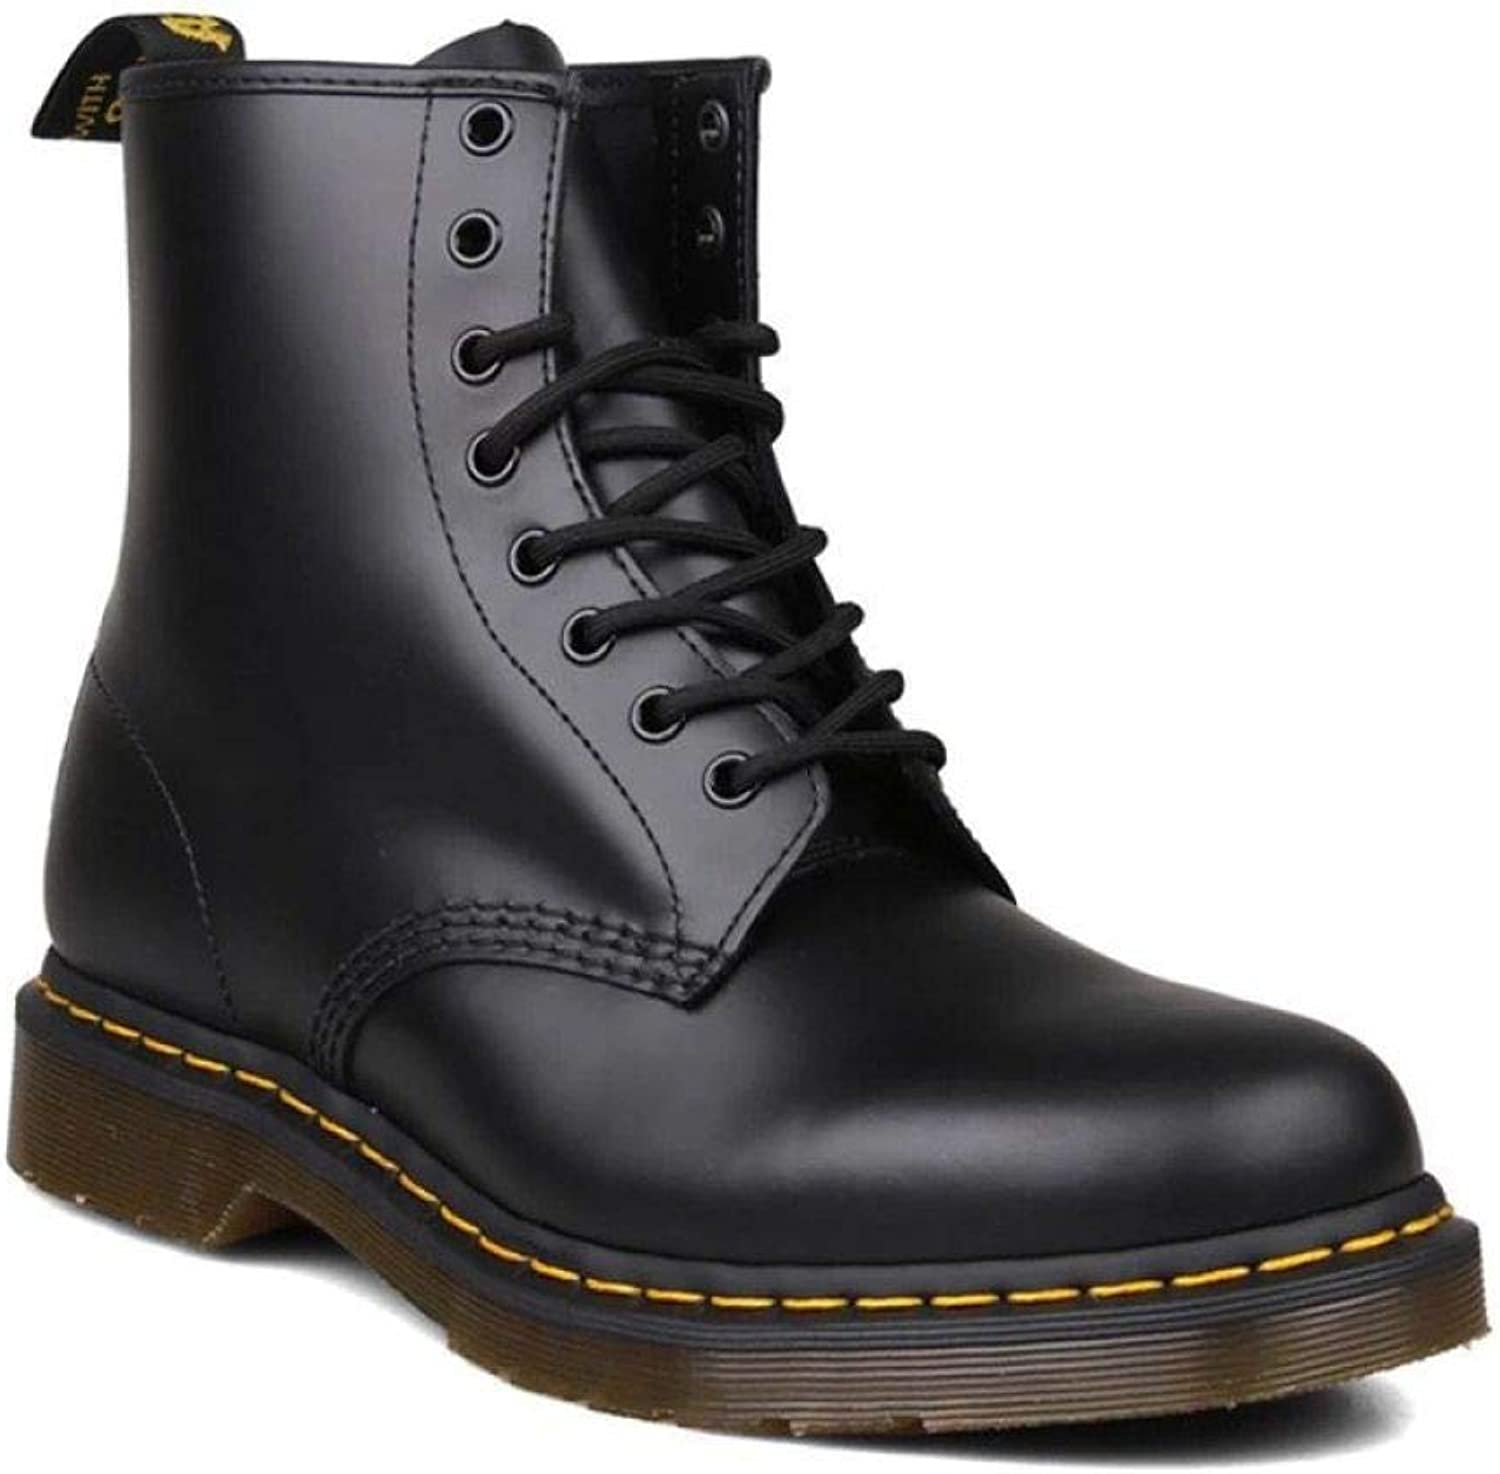 QIKAI Military Boots for Men 8-Hole Martin Boots Men's Leather Tooling shoes Men's High Help Plus Cashmere Boots